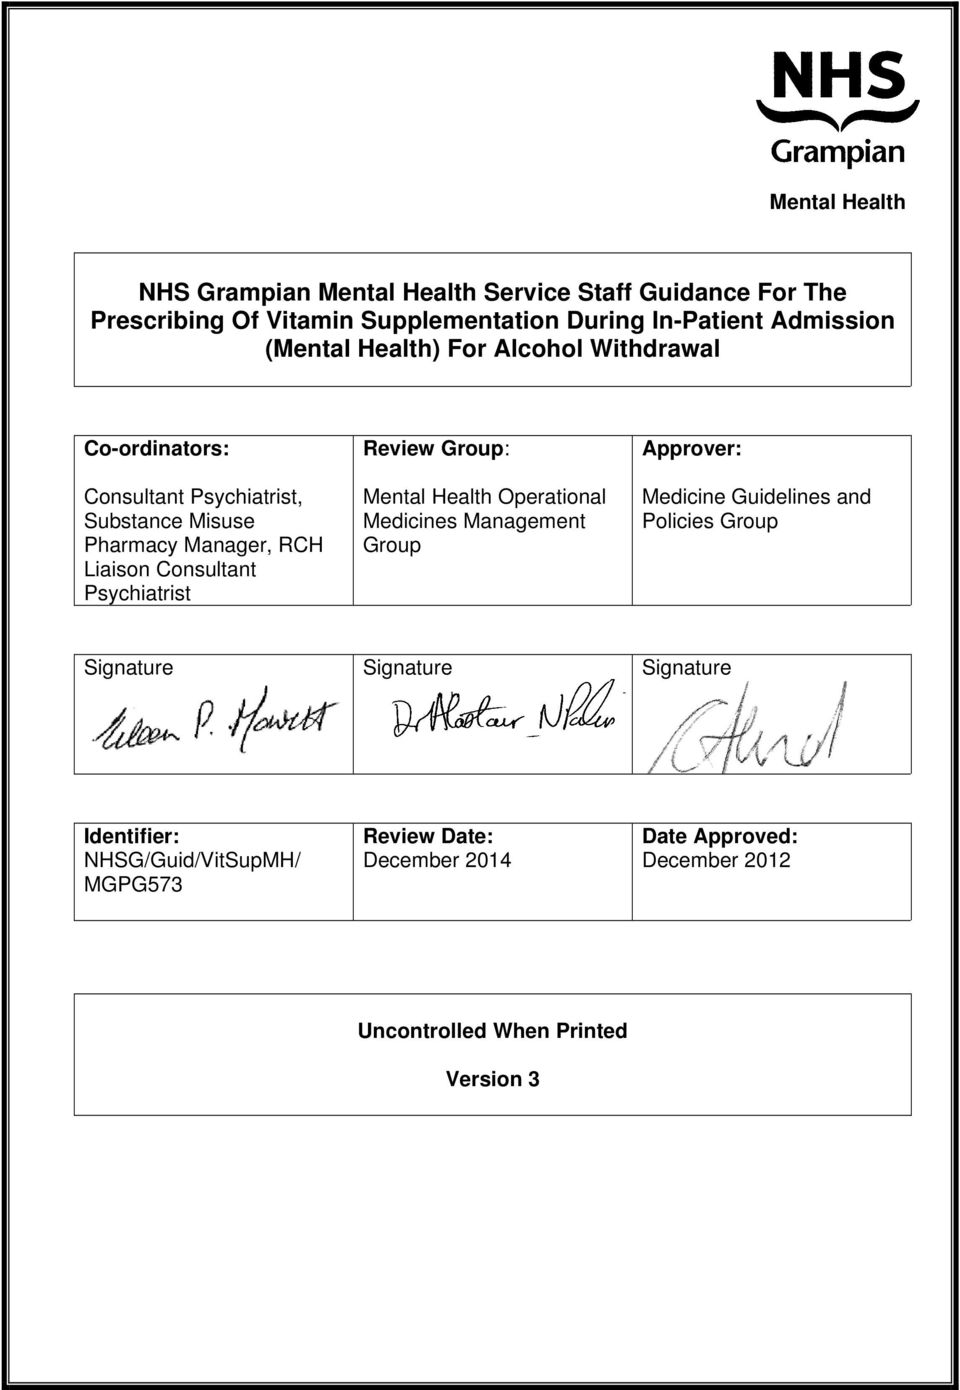 Psychiatrist Review Group: Mental Health Operational Medicines Management Group Approver: Medicine Guidelines and Policies Group Signature